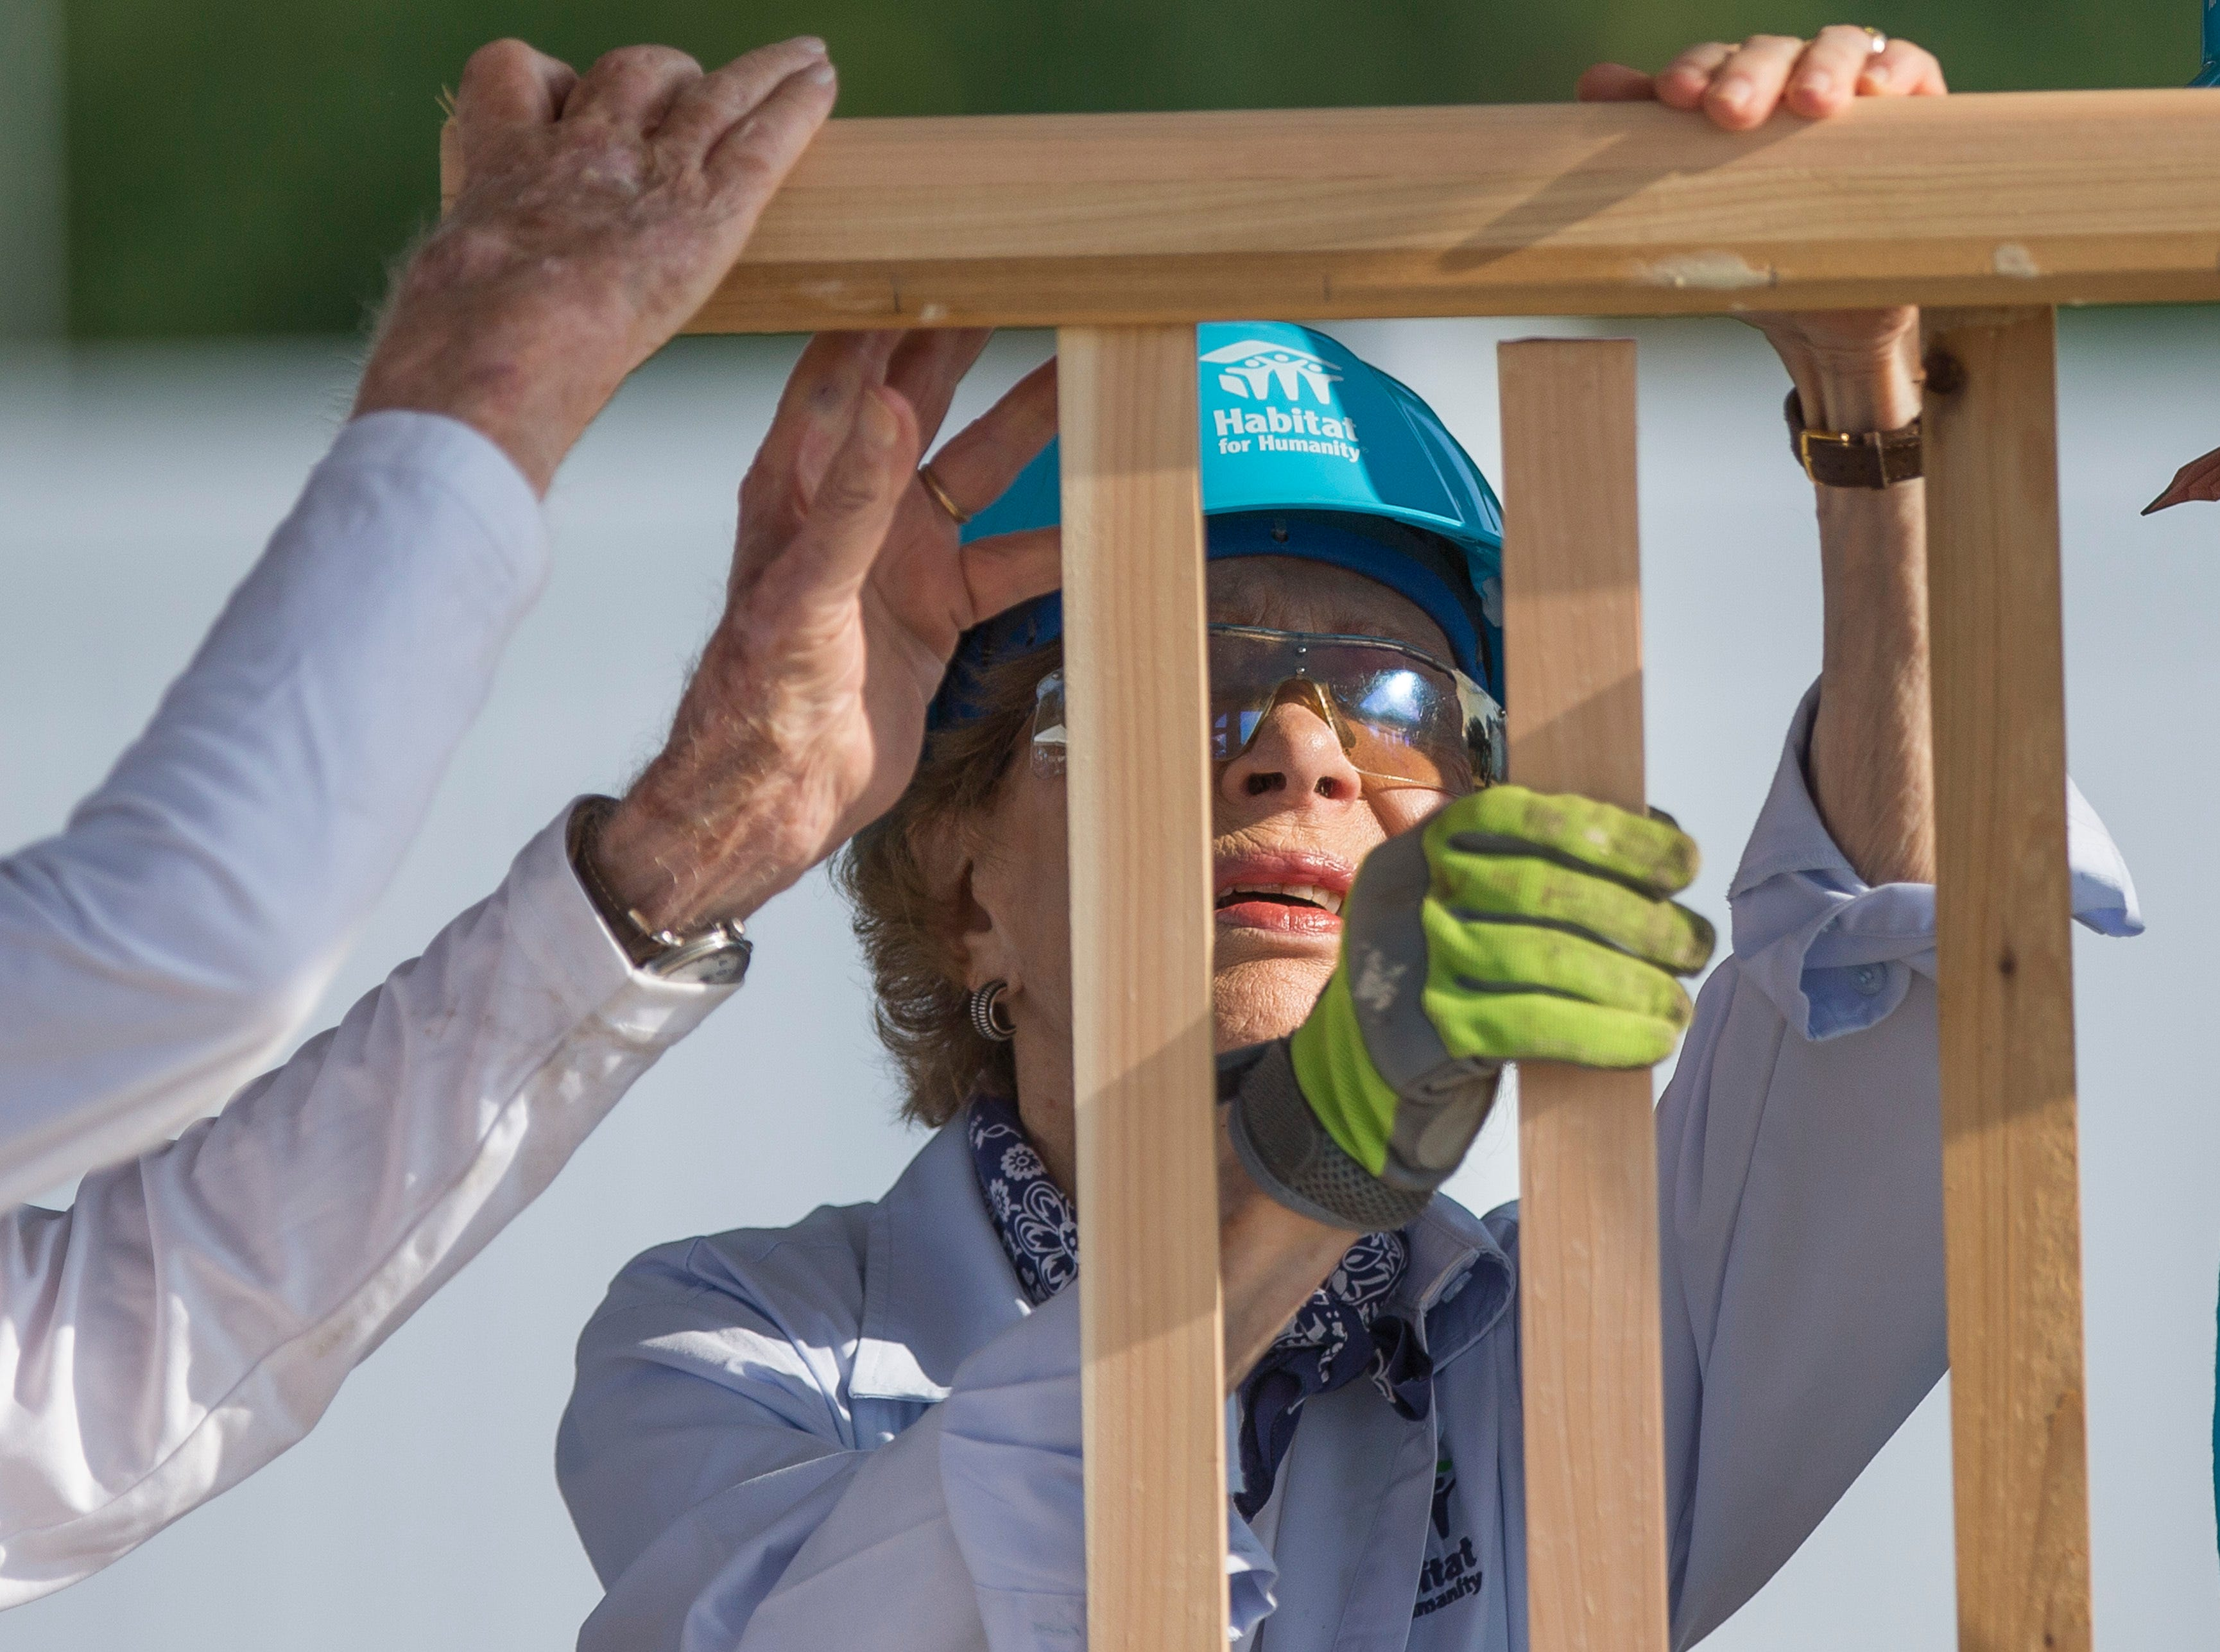 Former first lady Rosalynn Carter works with other volunteers on site during the first day of the weeklong Jimmy & Rosalynn Carter Work Project.